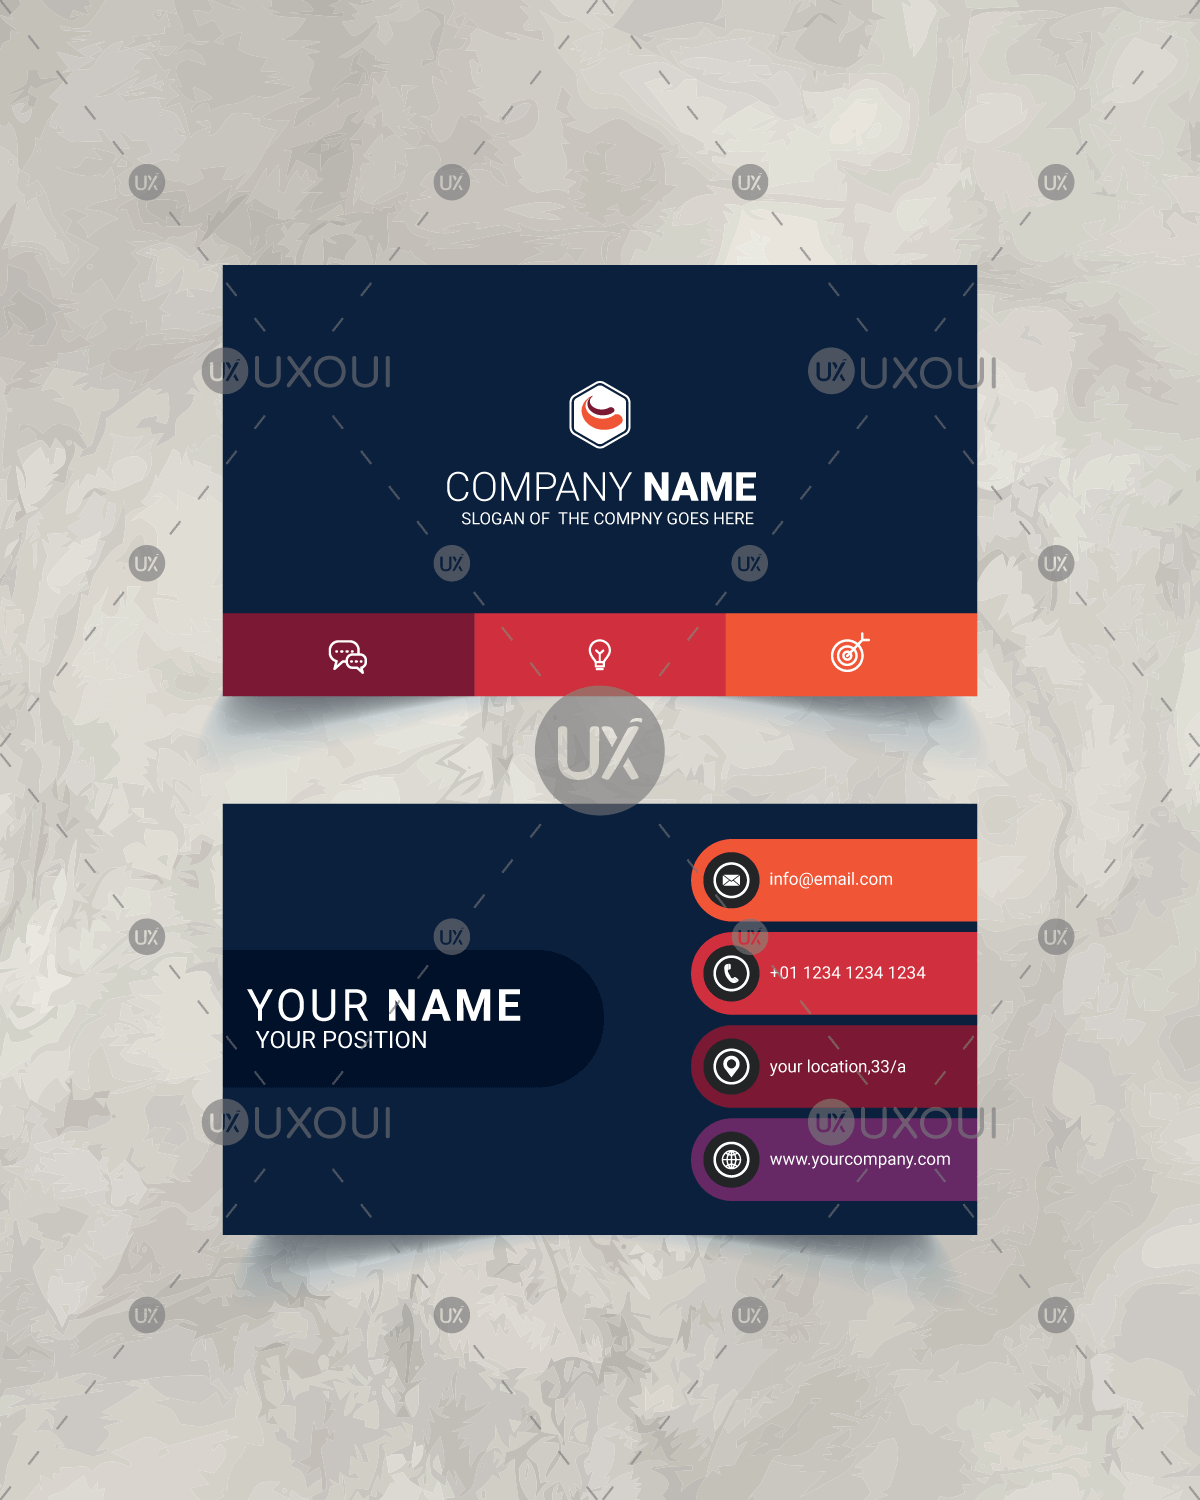 Stylish modern business card design template vector uxoui stylish modern business card design template vector maxwellsz